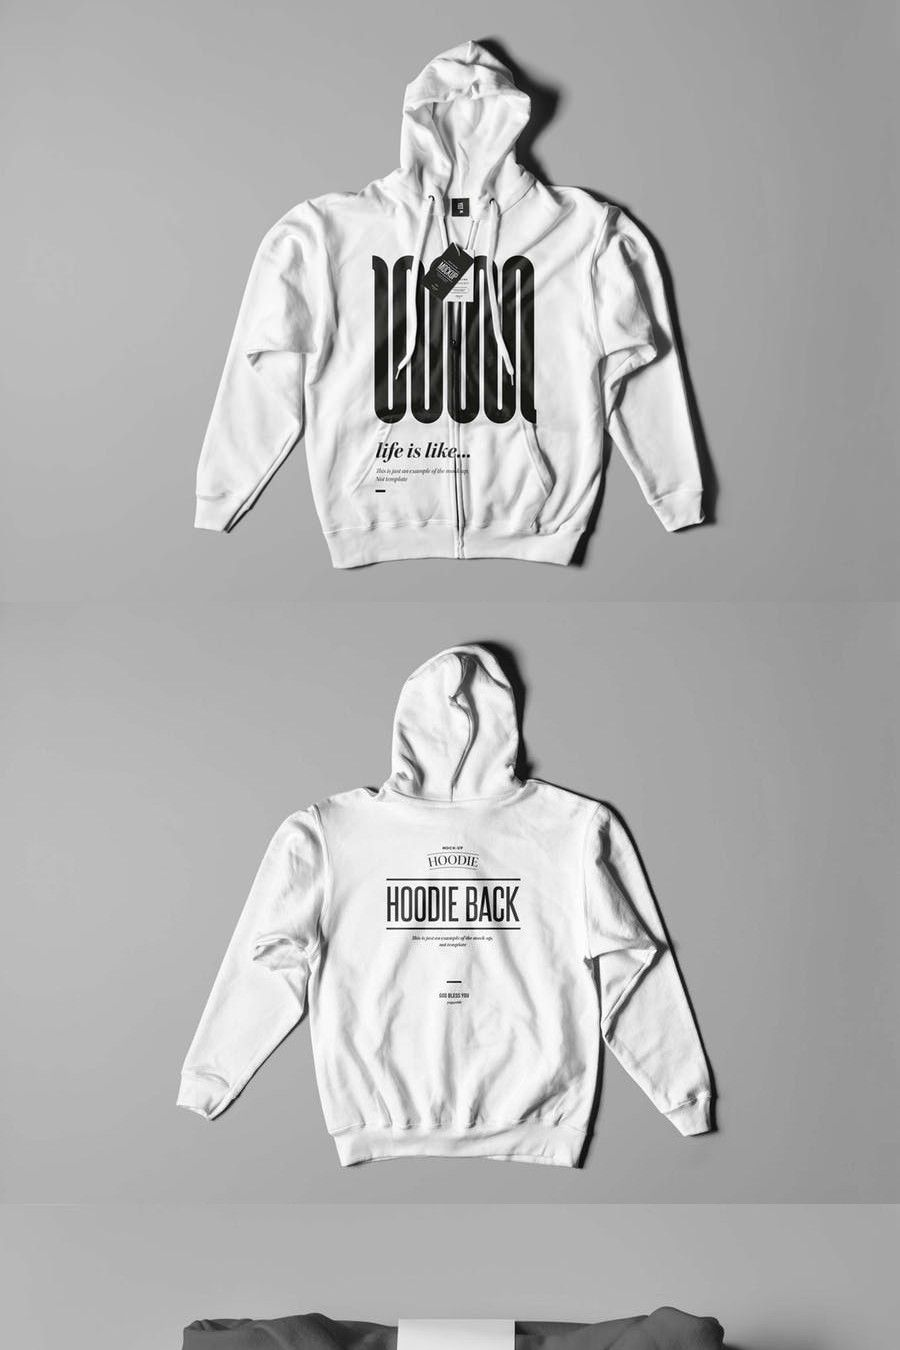 Download Hoodie Mock Up 2 Mockup Mocking Hoodies